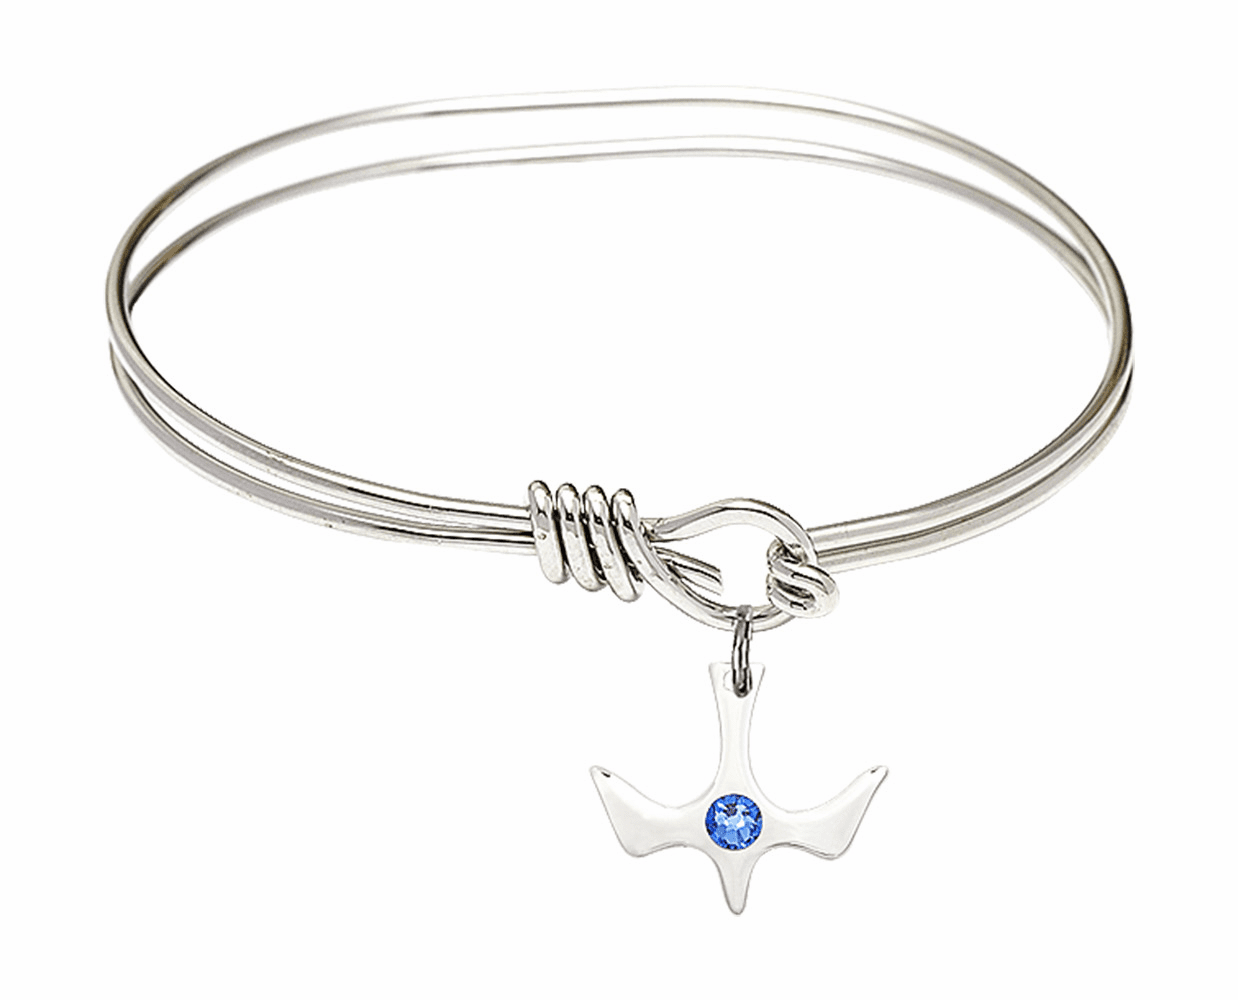 Textured Bangle Bracelet w/Sapphire Holy Spirit Charm by Bliss Mfg